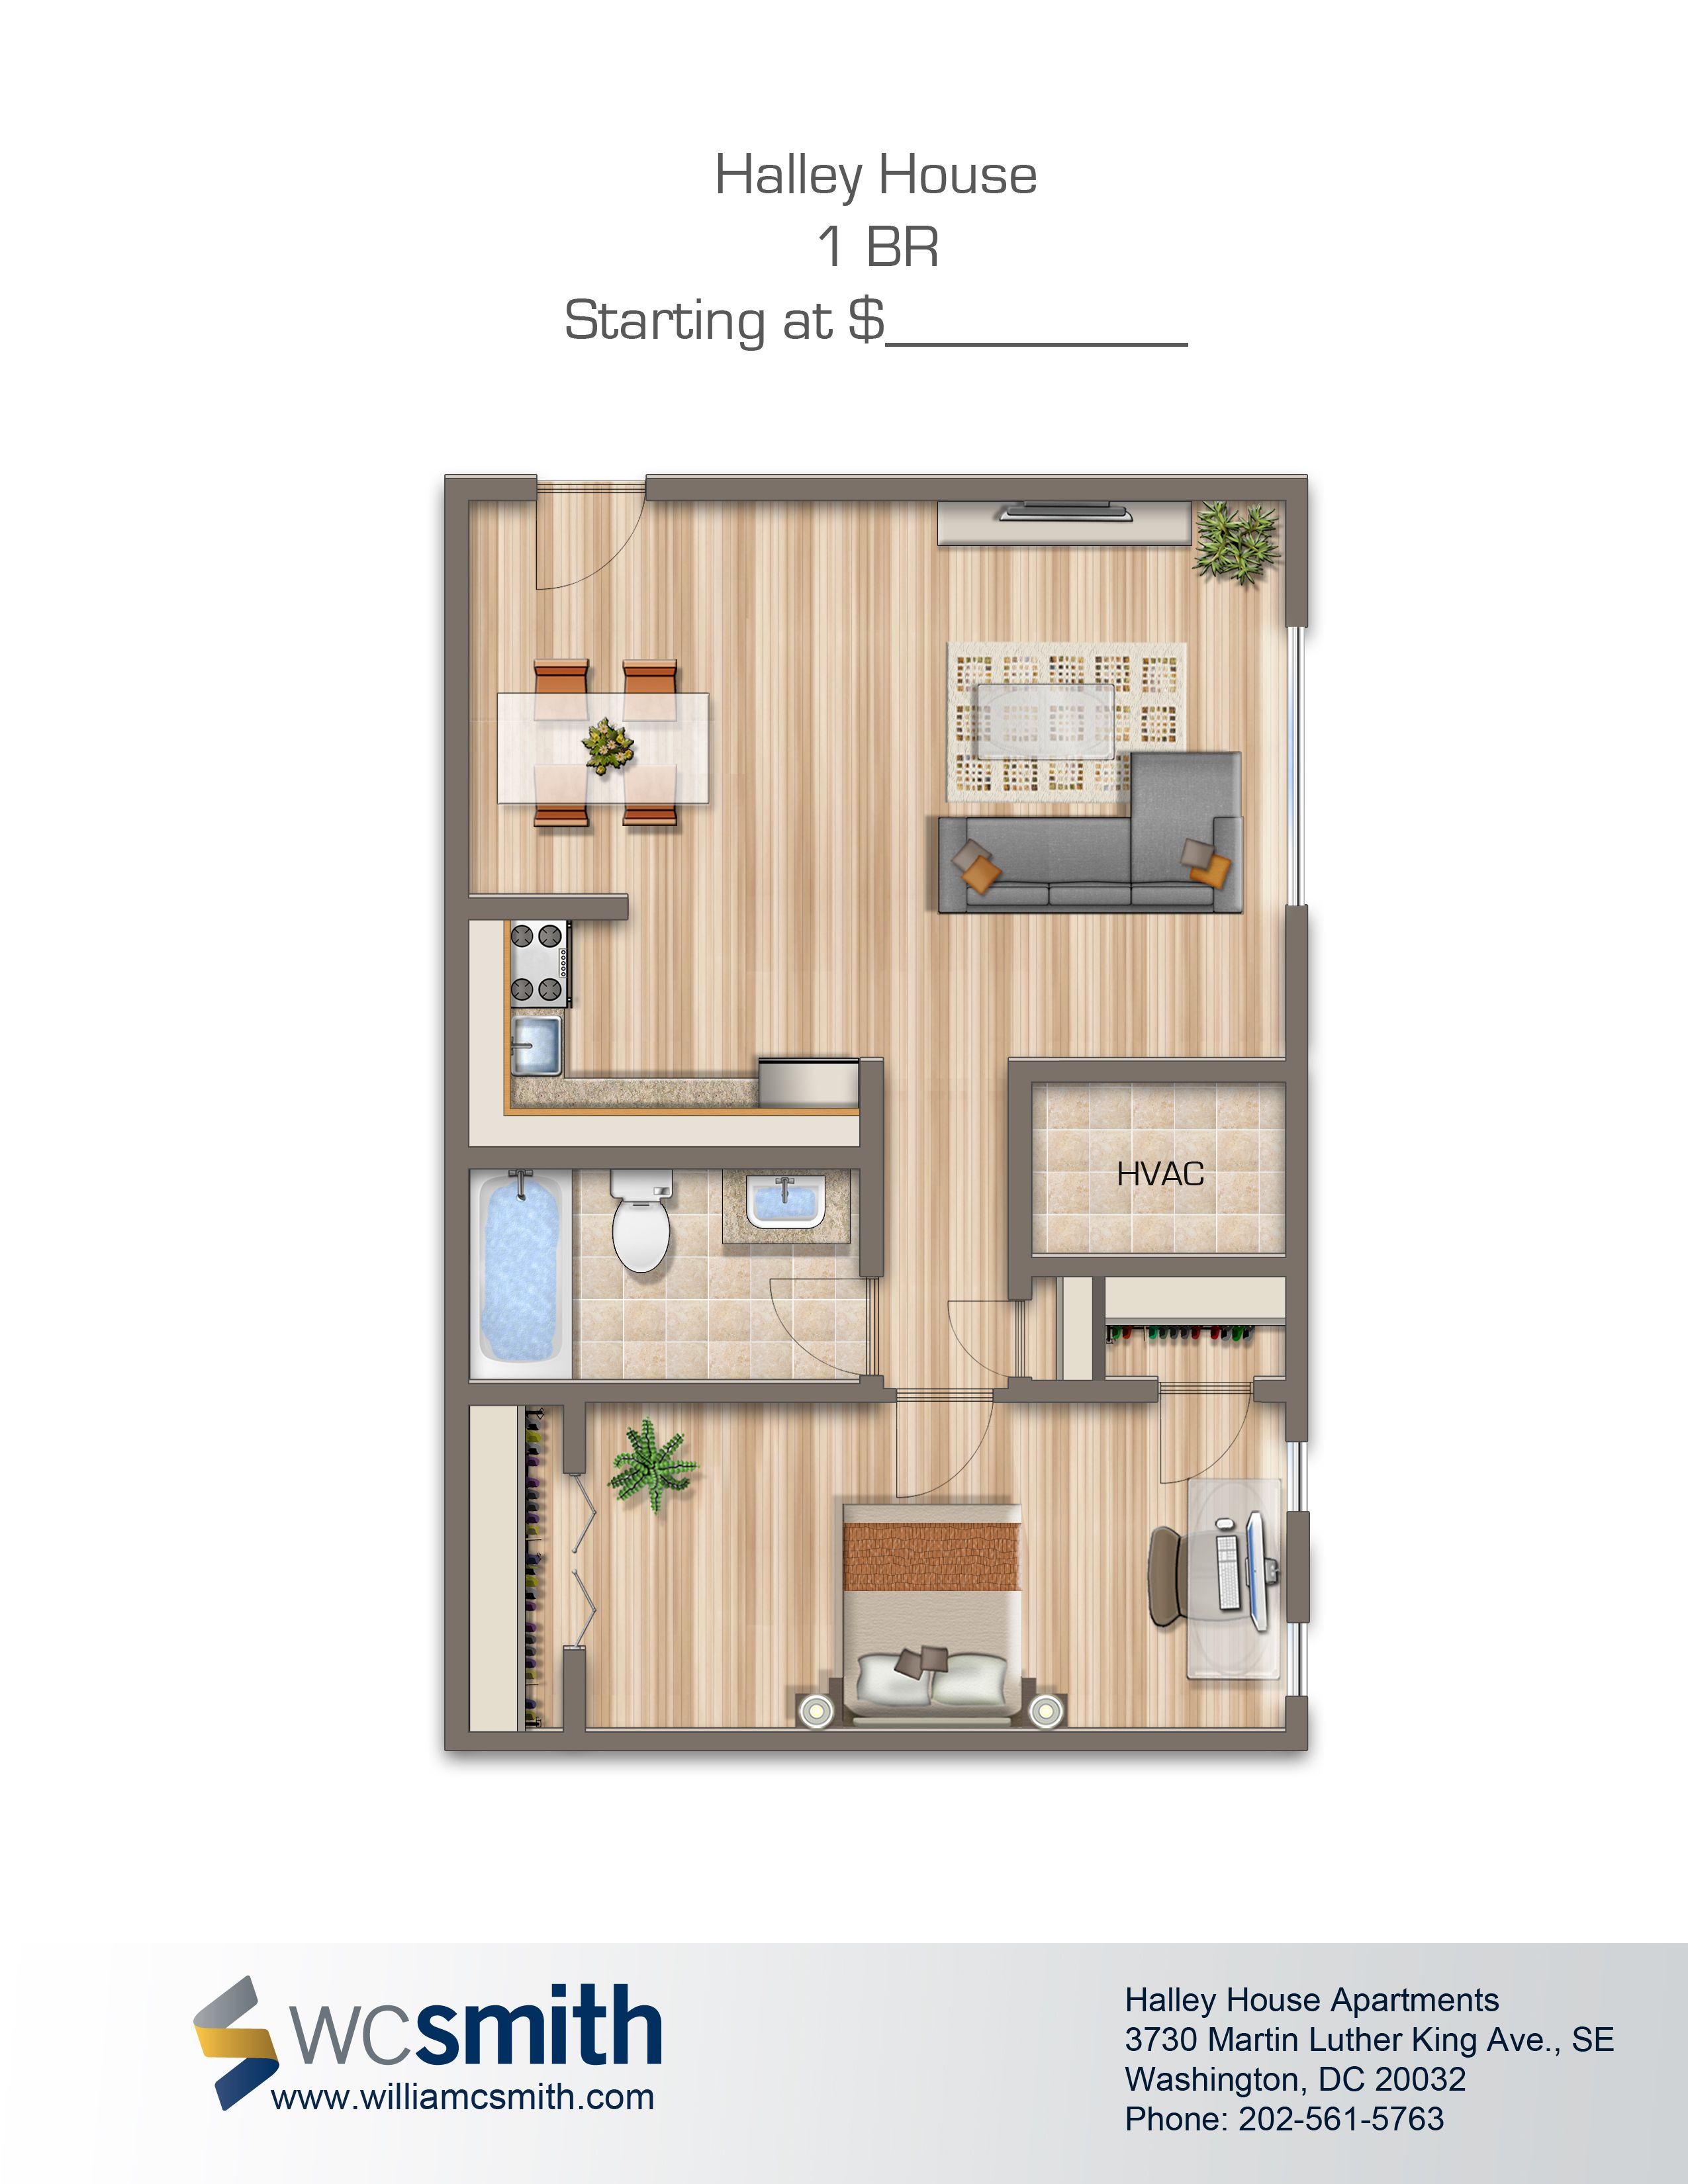 Halley House Bedroom Floor Plans Washington Dc And Apartments